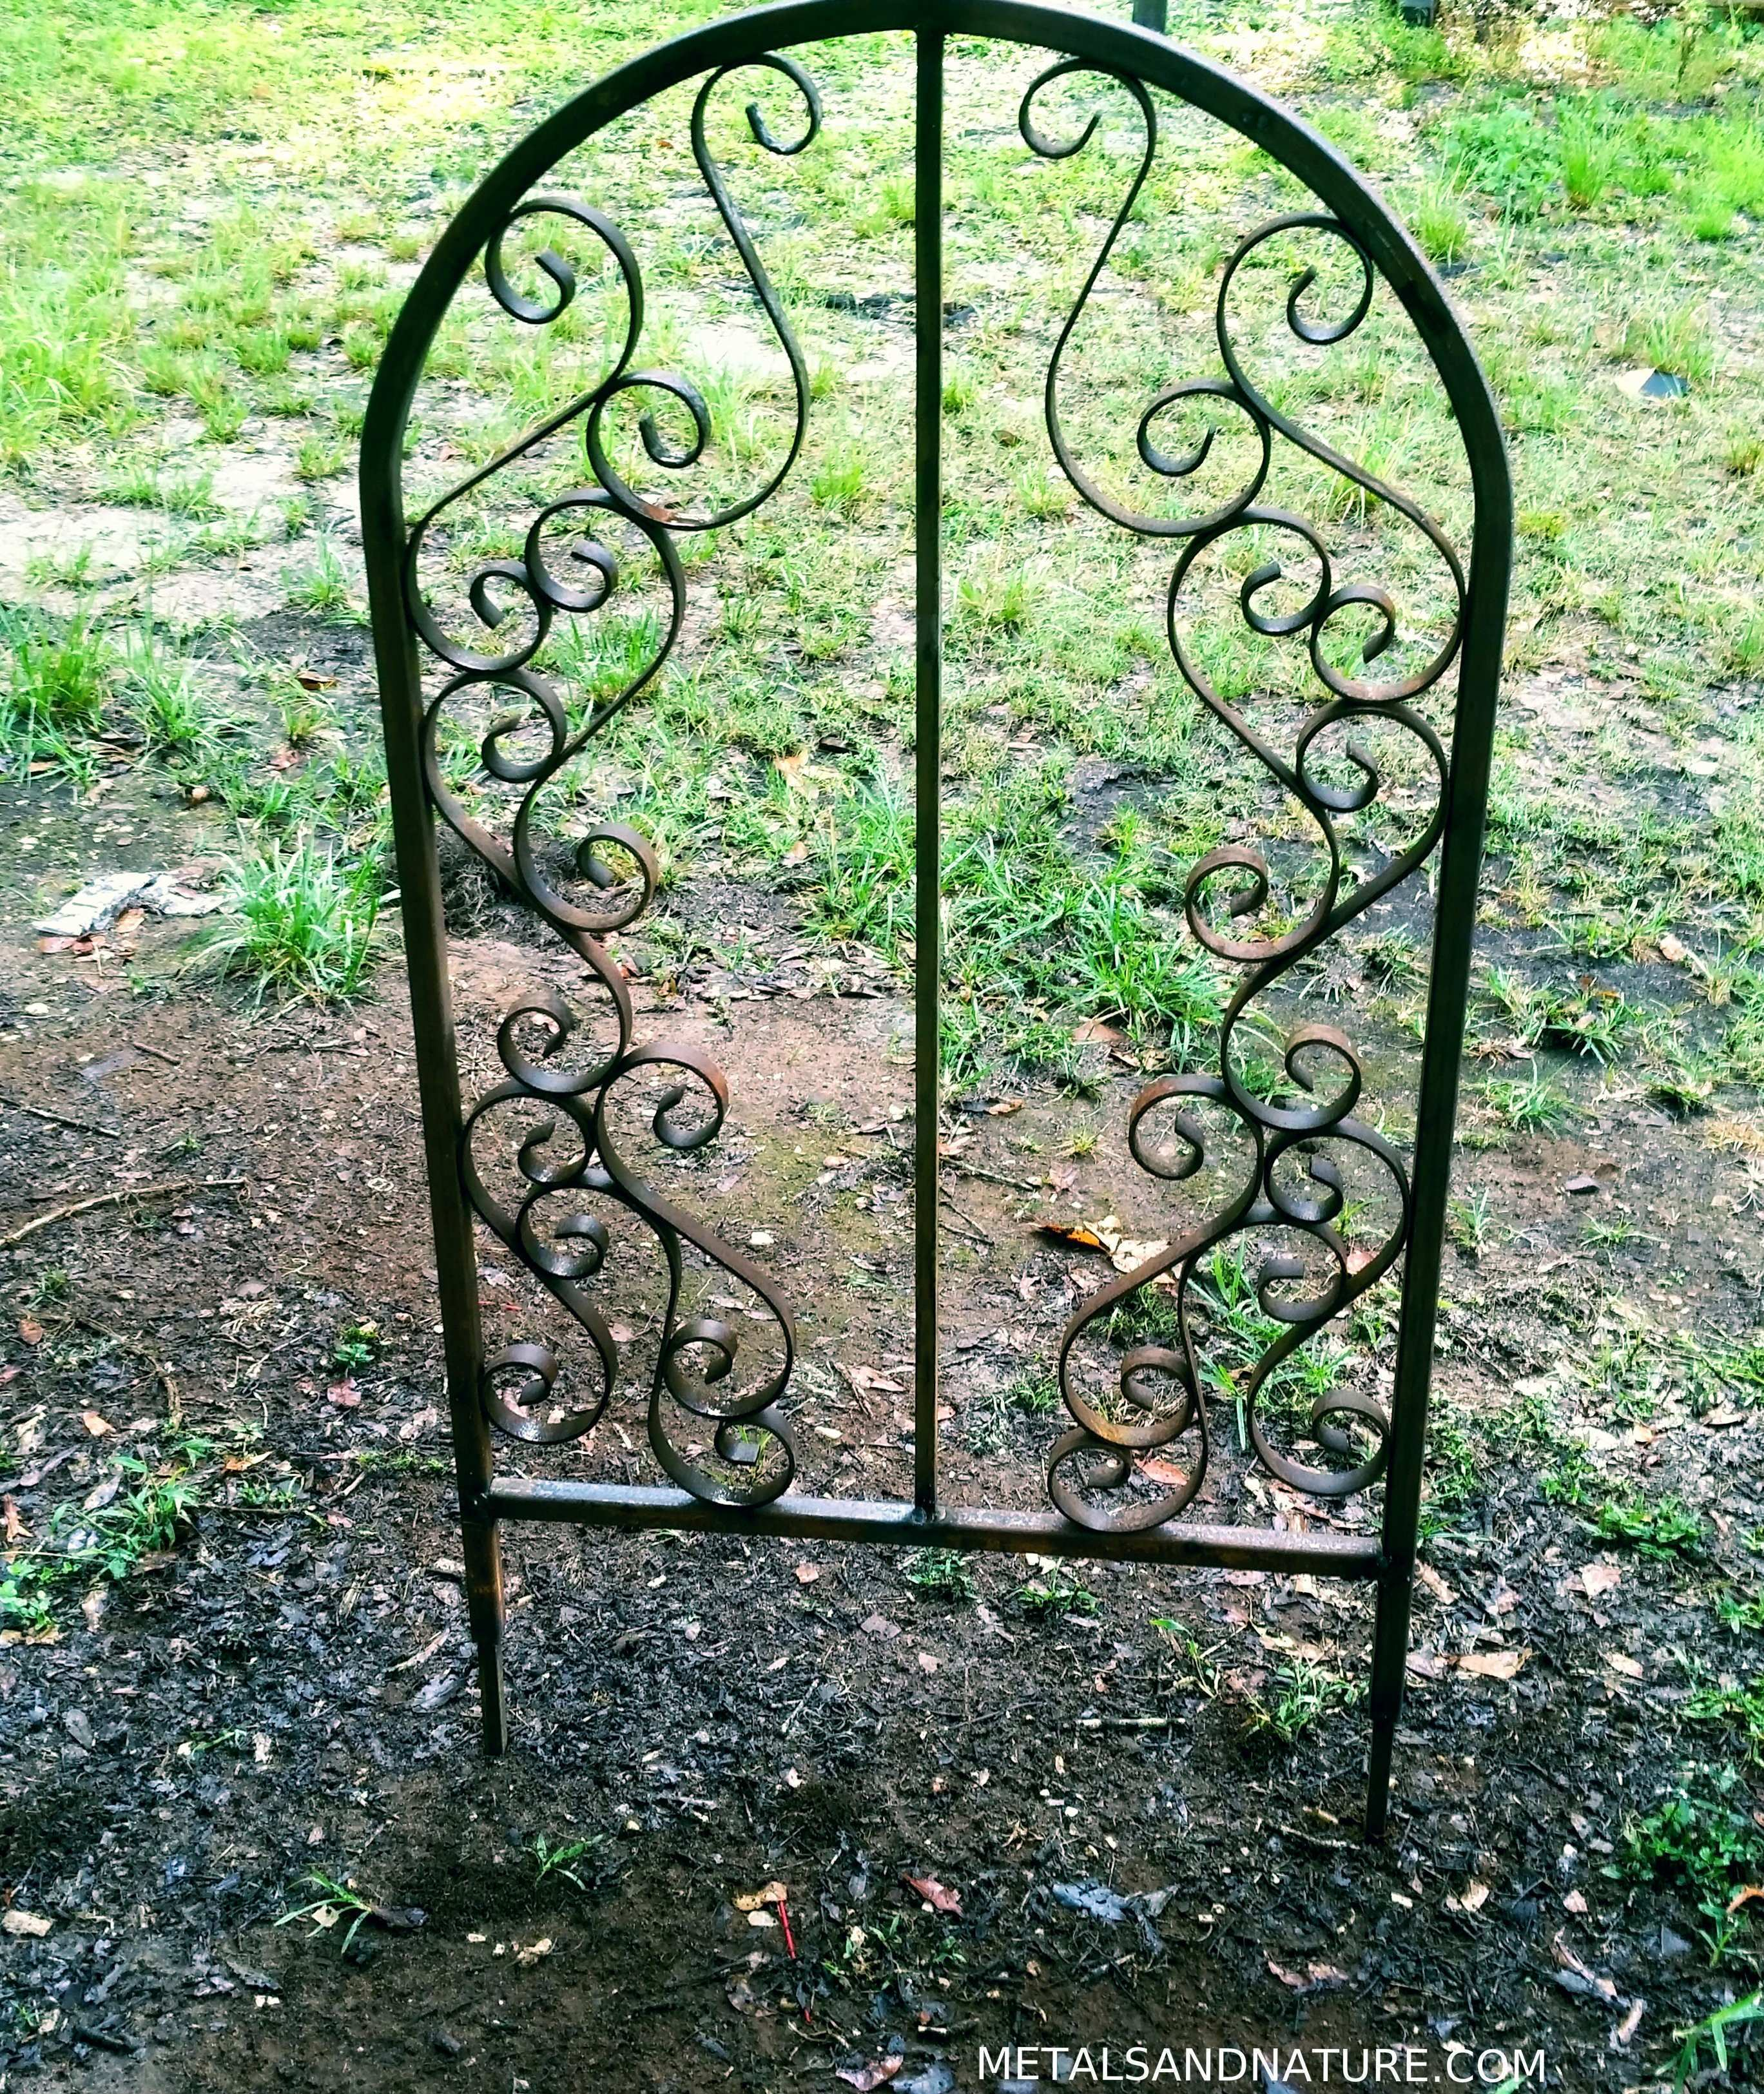 Wrought Iron Decor Tampa Florida